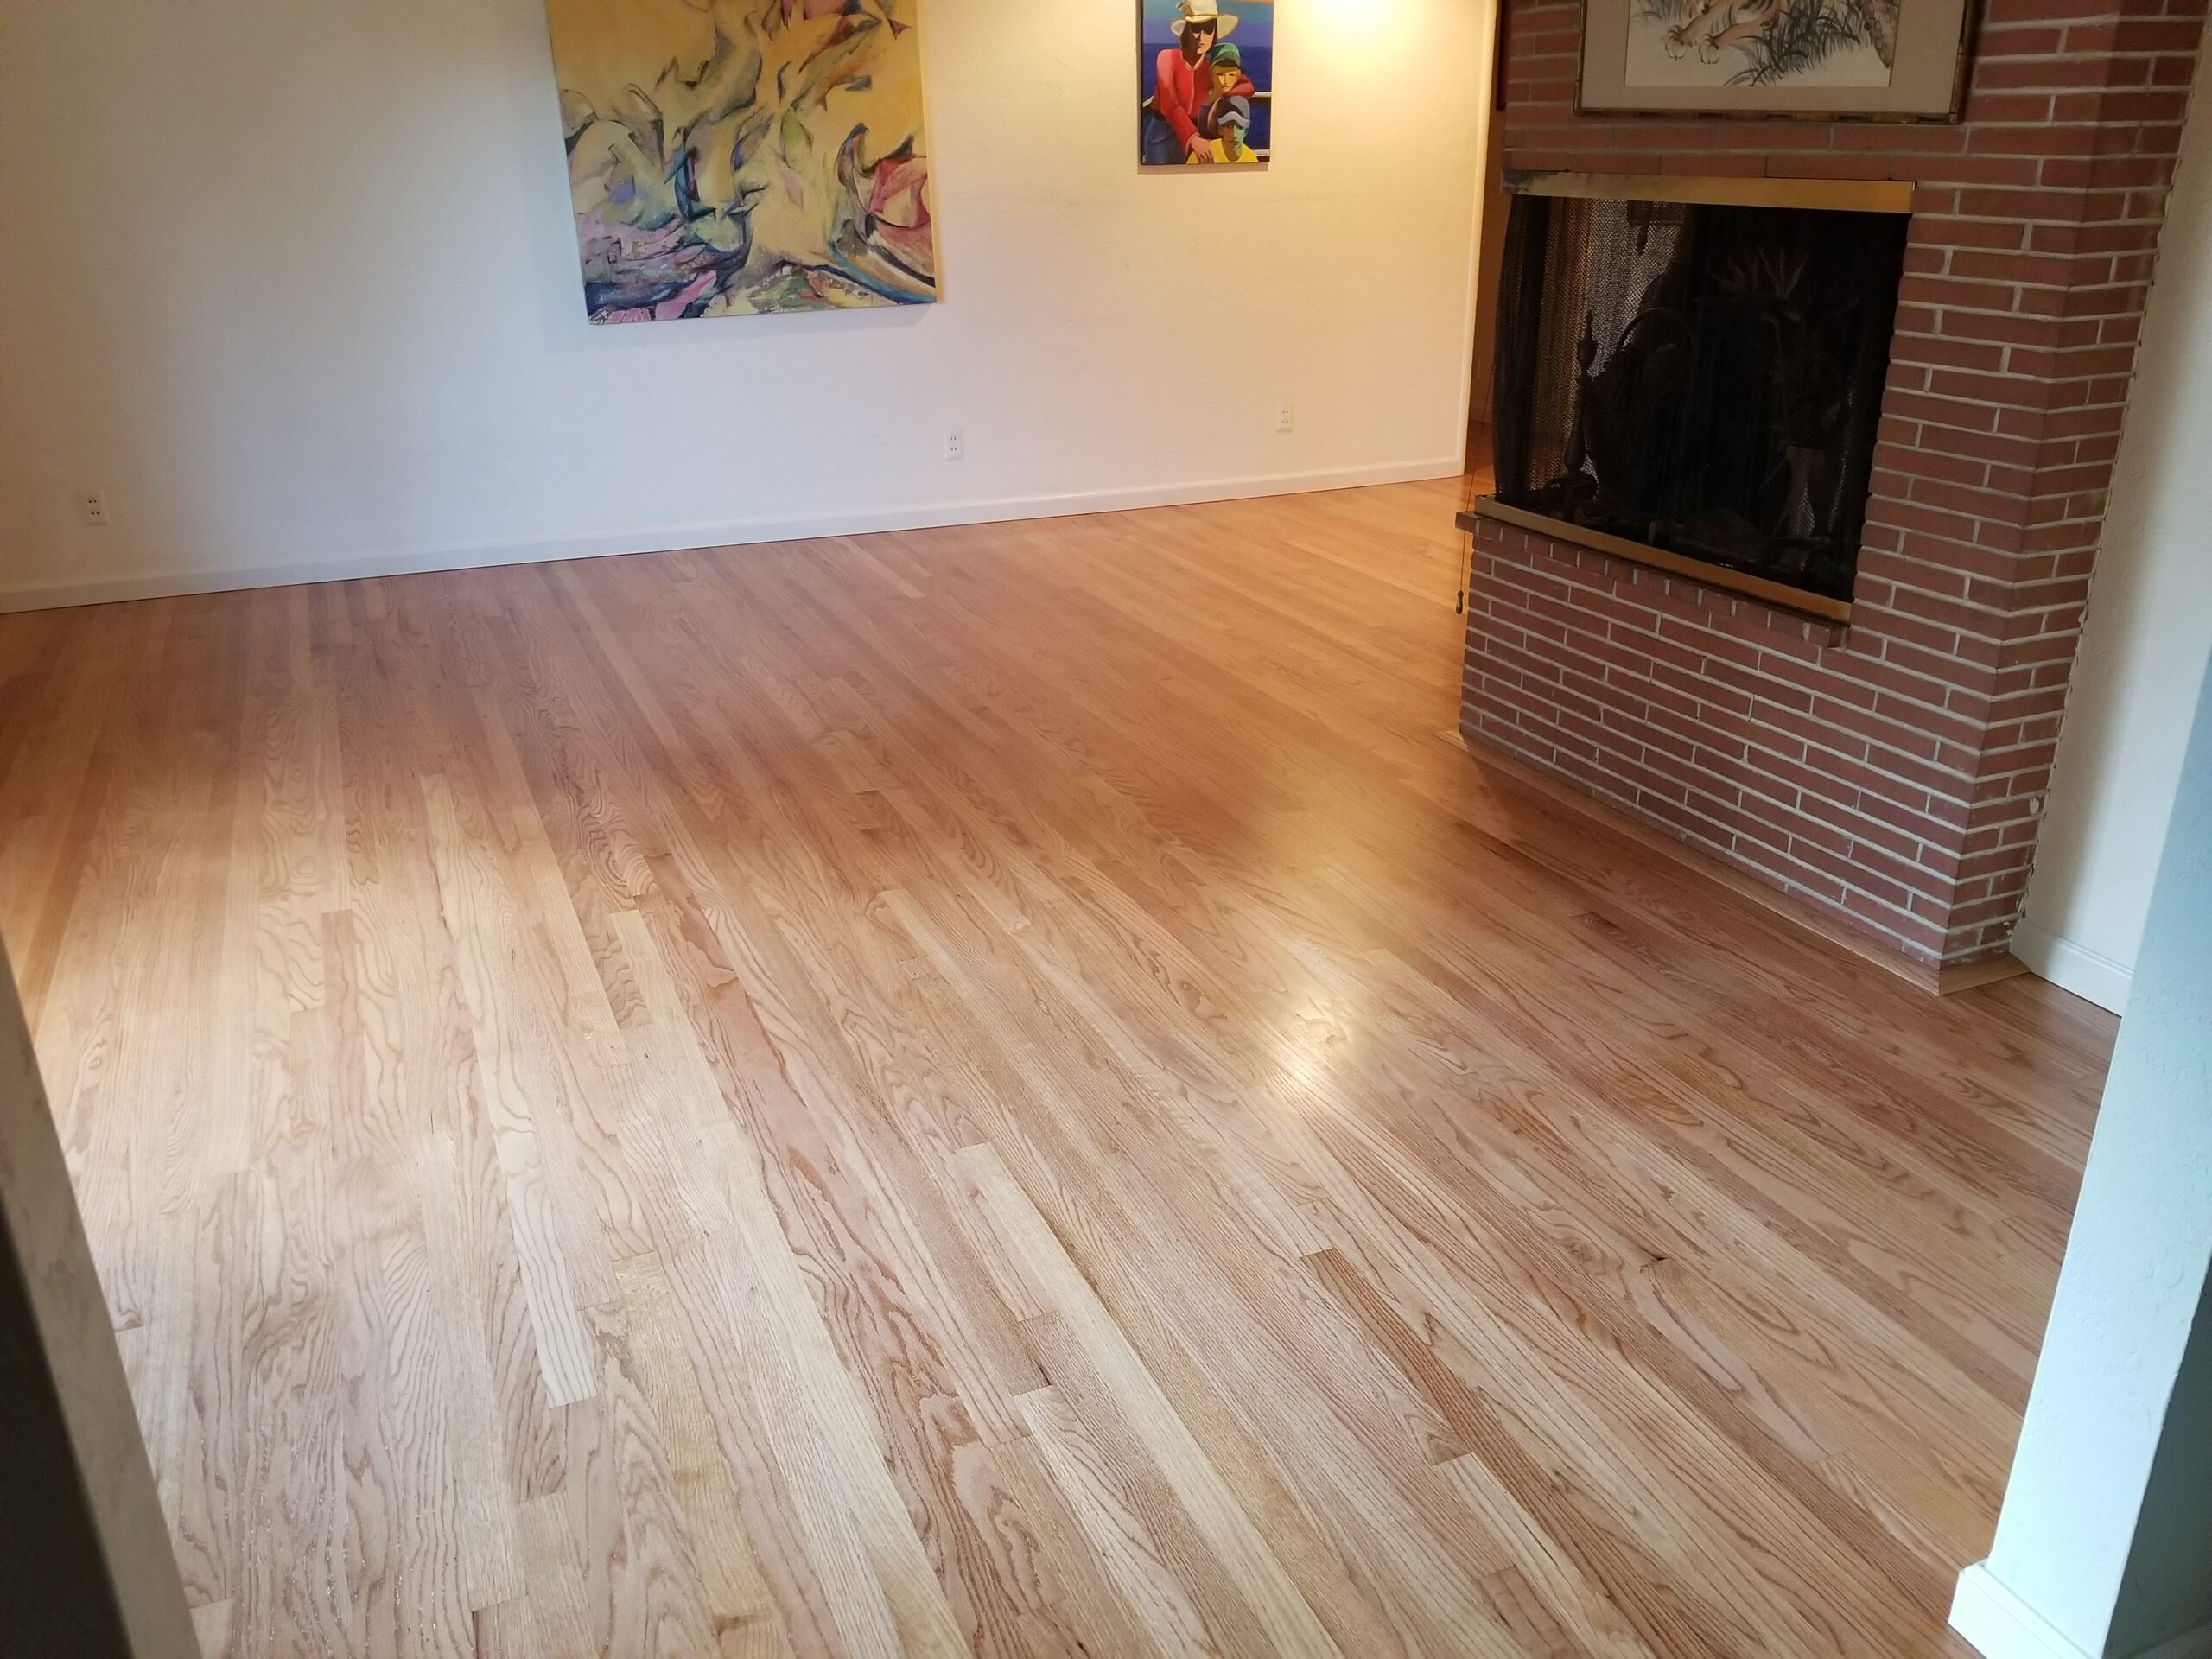 Los Atos family room with newly installed white oak flooring with custom pecan finish, 3 coats.